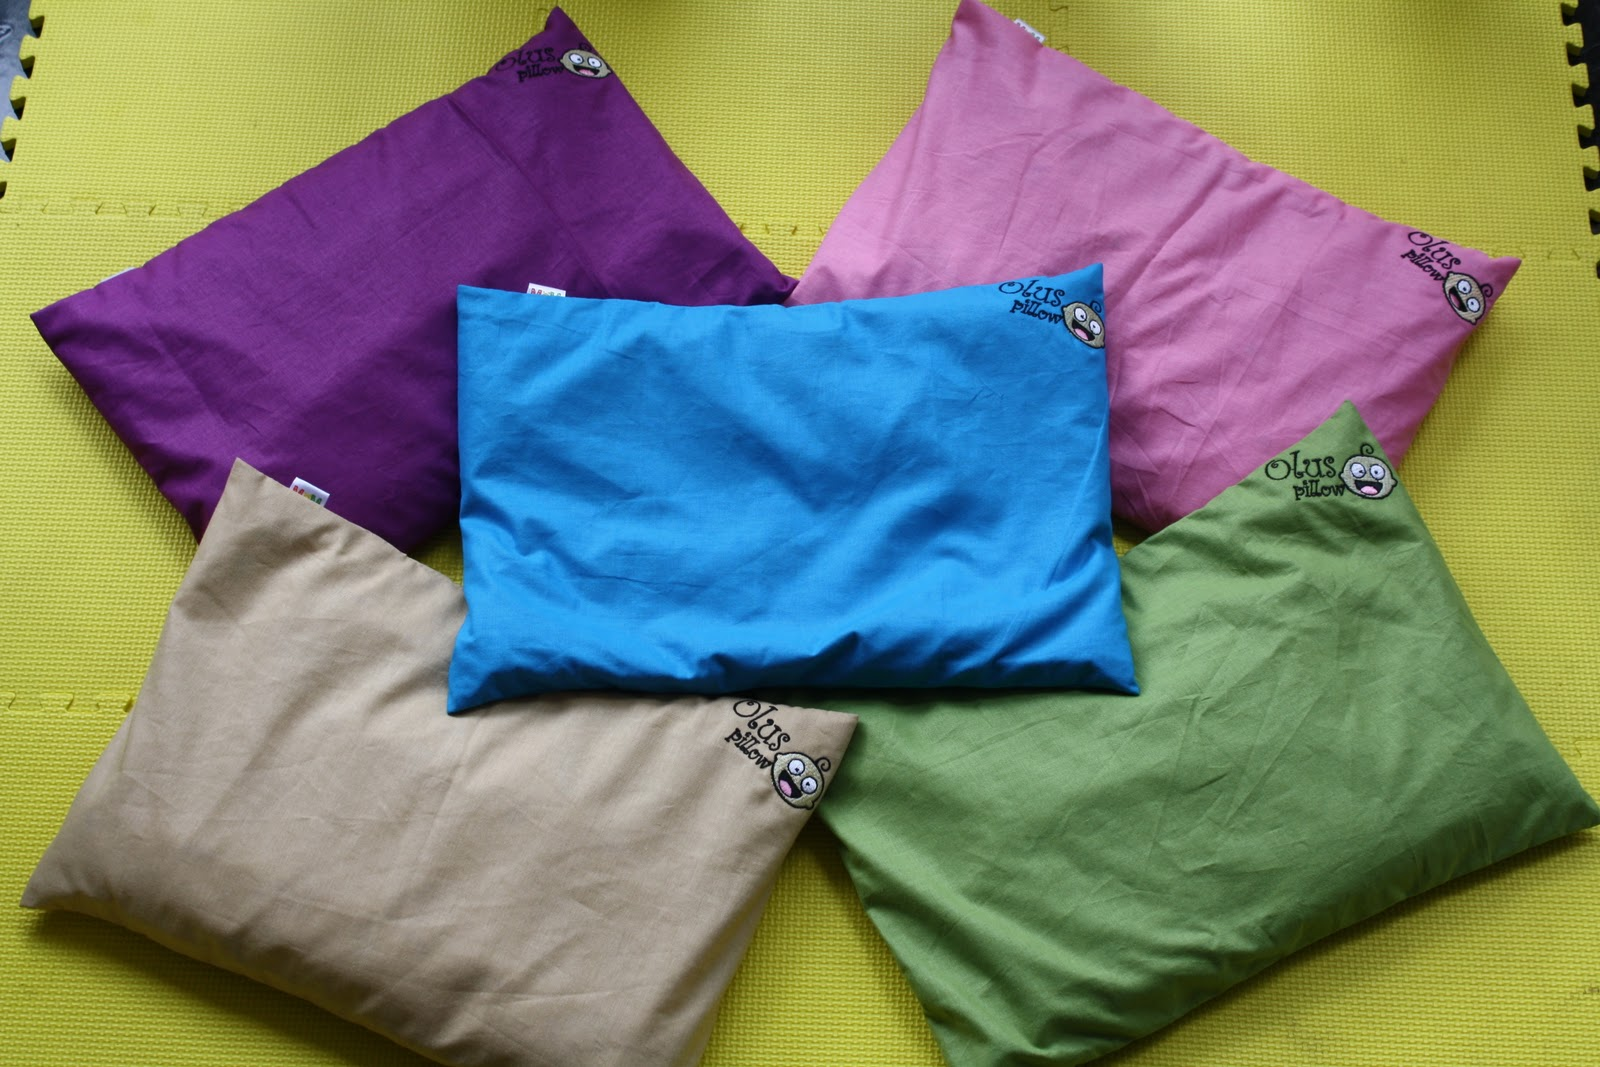 Our Product Sarung Bantal Olus Pillow